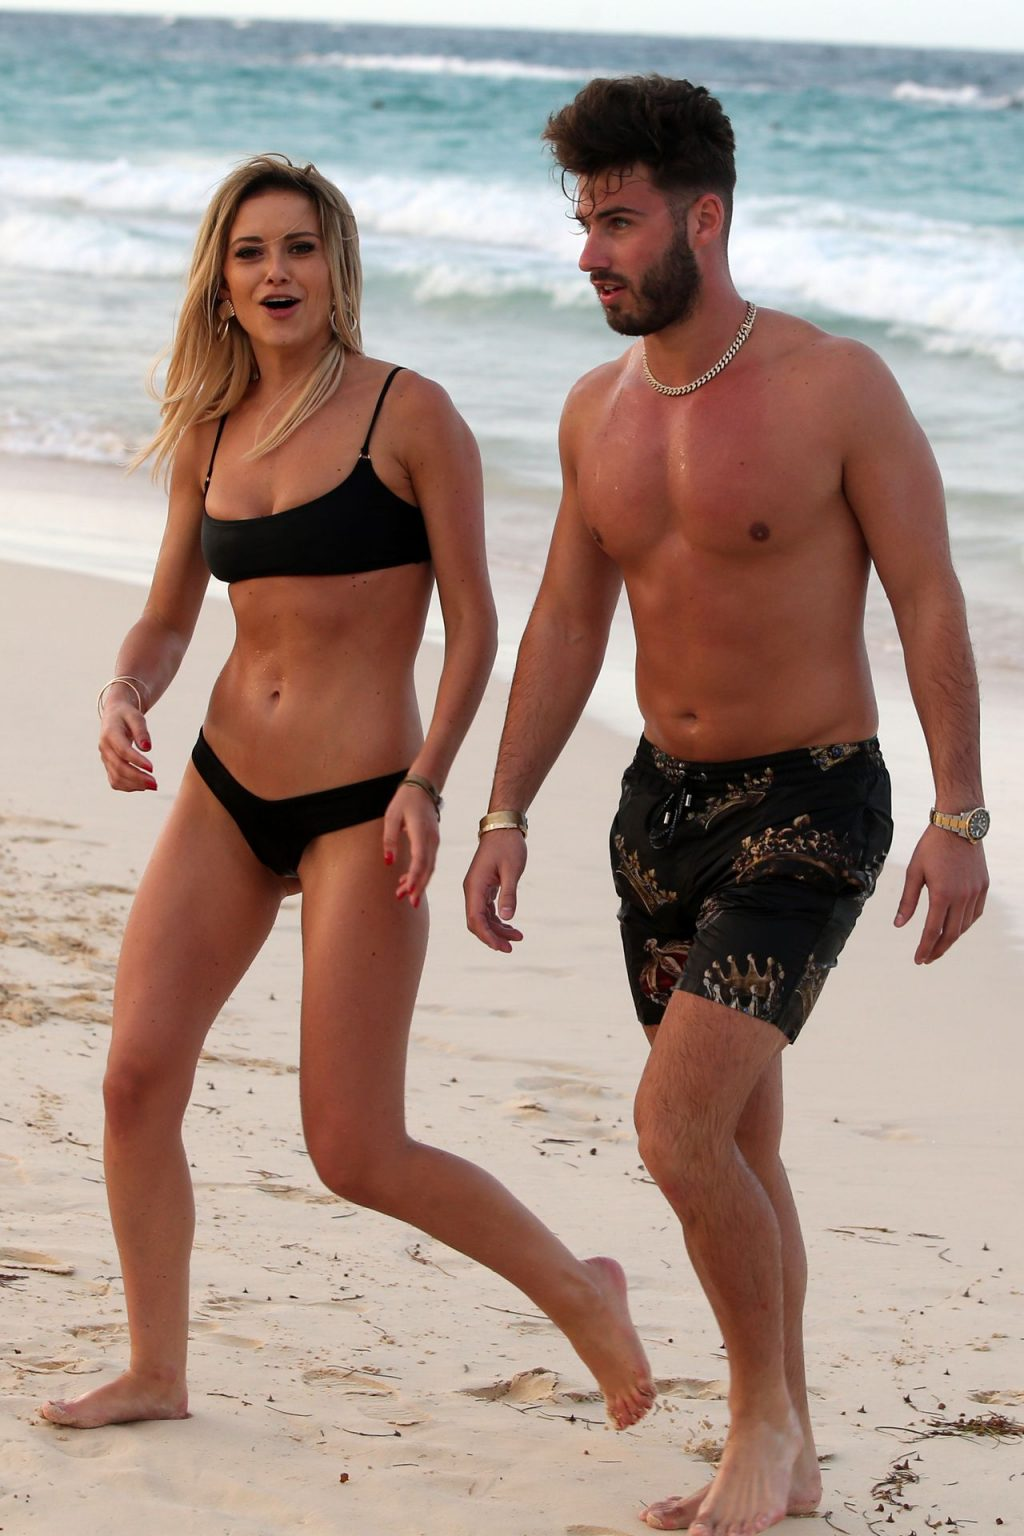 Olivia Bentley Sexy The Fappening Blog 15 1024x1536 - Olivia Bentley and Joshua Ritchie Enjoy Their Vacation in Punta Cuna (26 Photos)